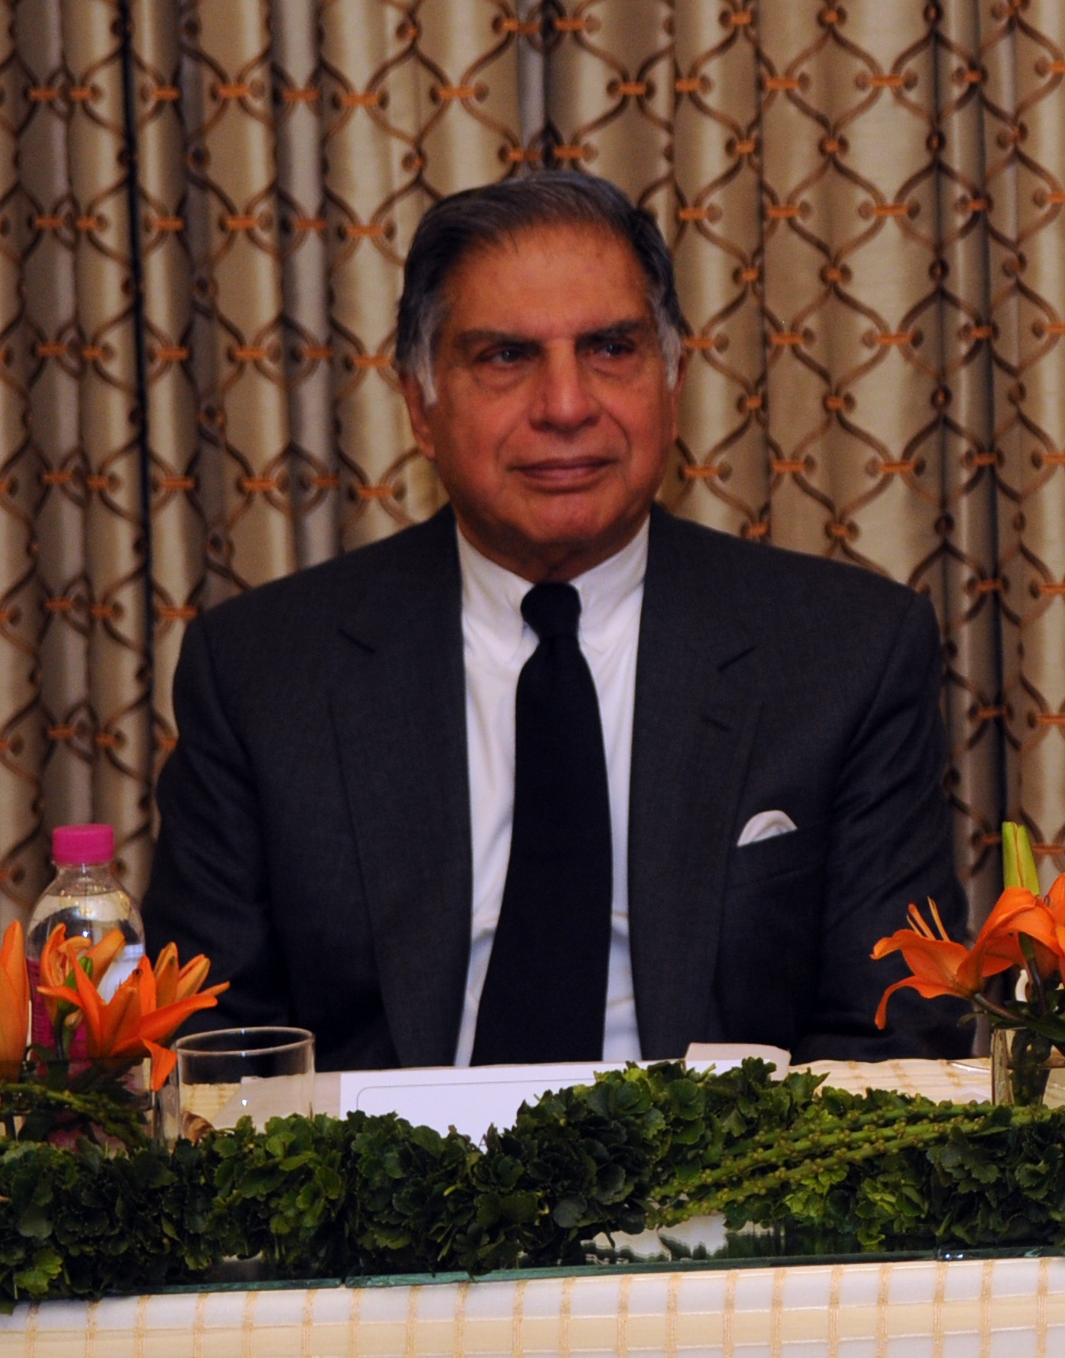 ratan tata 2 essay Ratan tata introduction ratan tata is the chairman of the tata group, india's largest corporation he is the latest in a long line of tatas to head the family-owned companyborn into an old parsi family of bombay, in december 28th 1937.